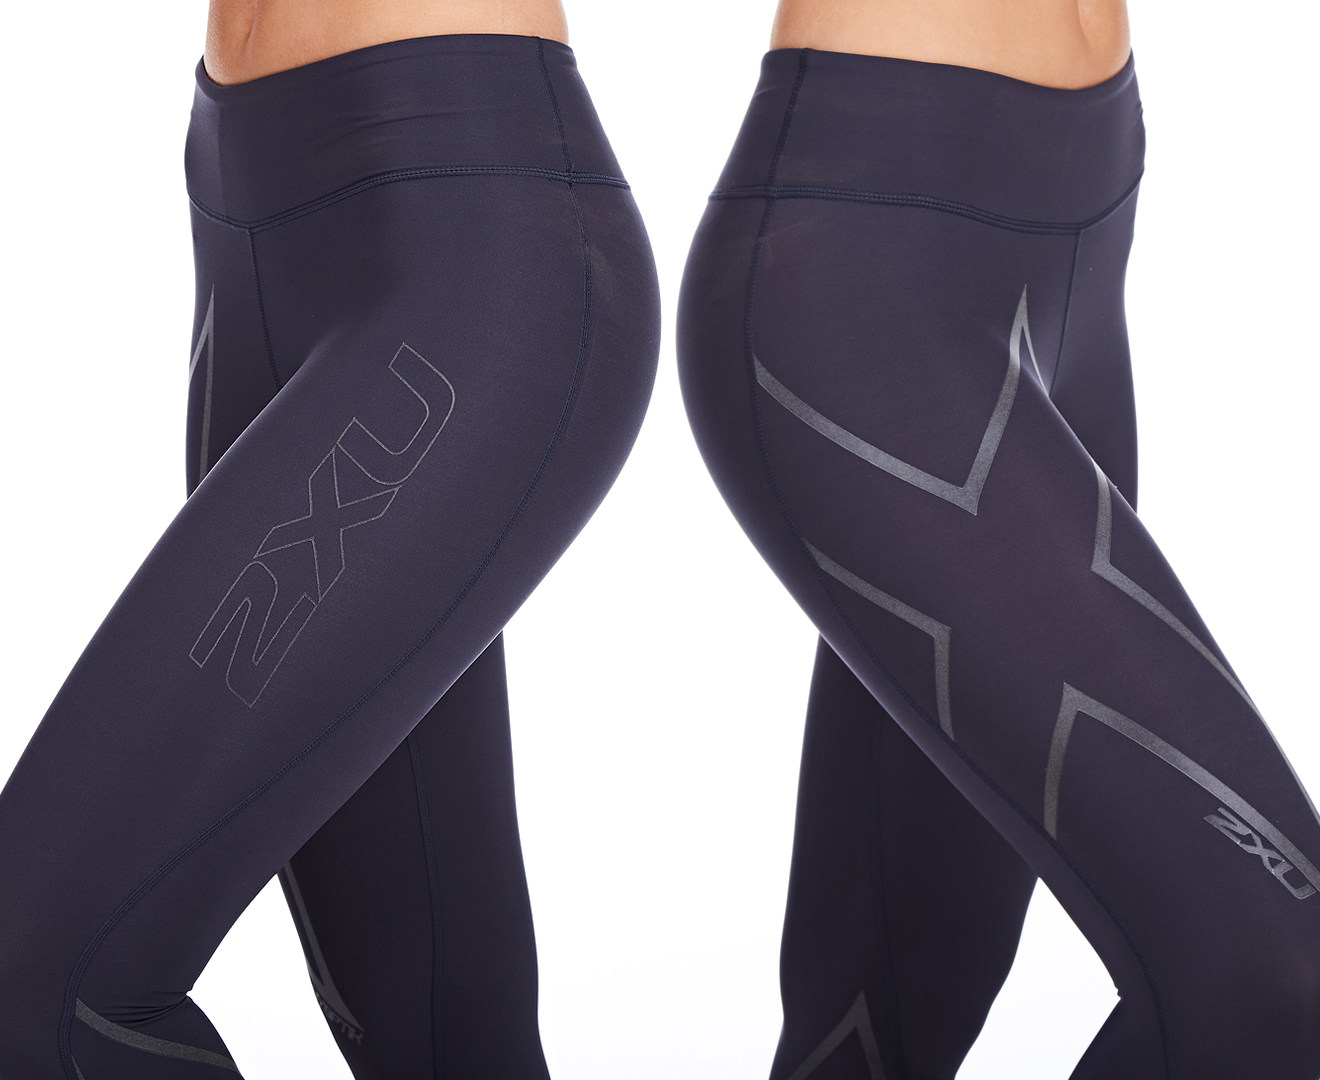 d8dc70e1d3 Women's 2XU Hyoptik Mid-Rise Compression Tights - Steel/Black Reflective |  Catch.com.au